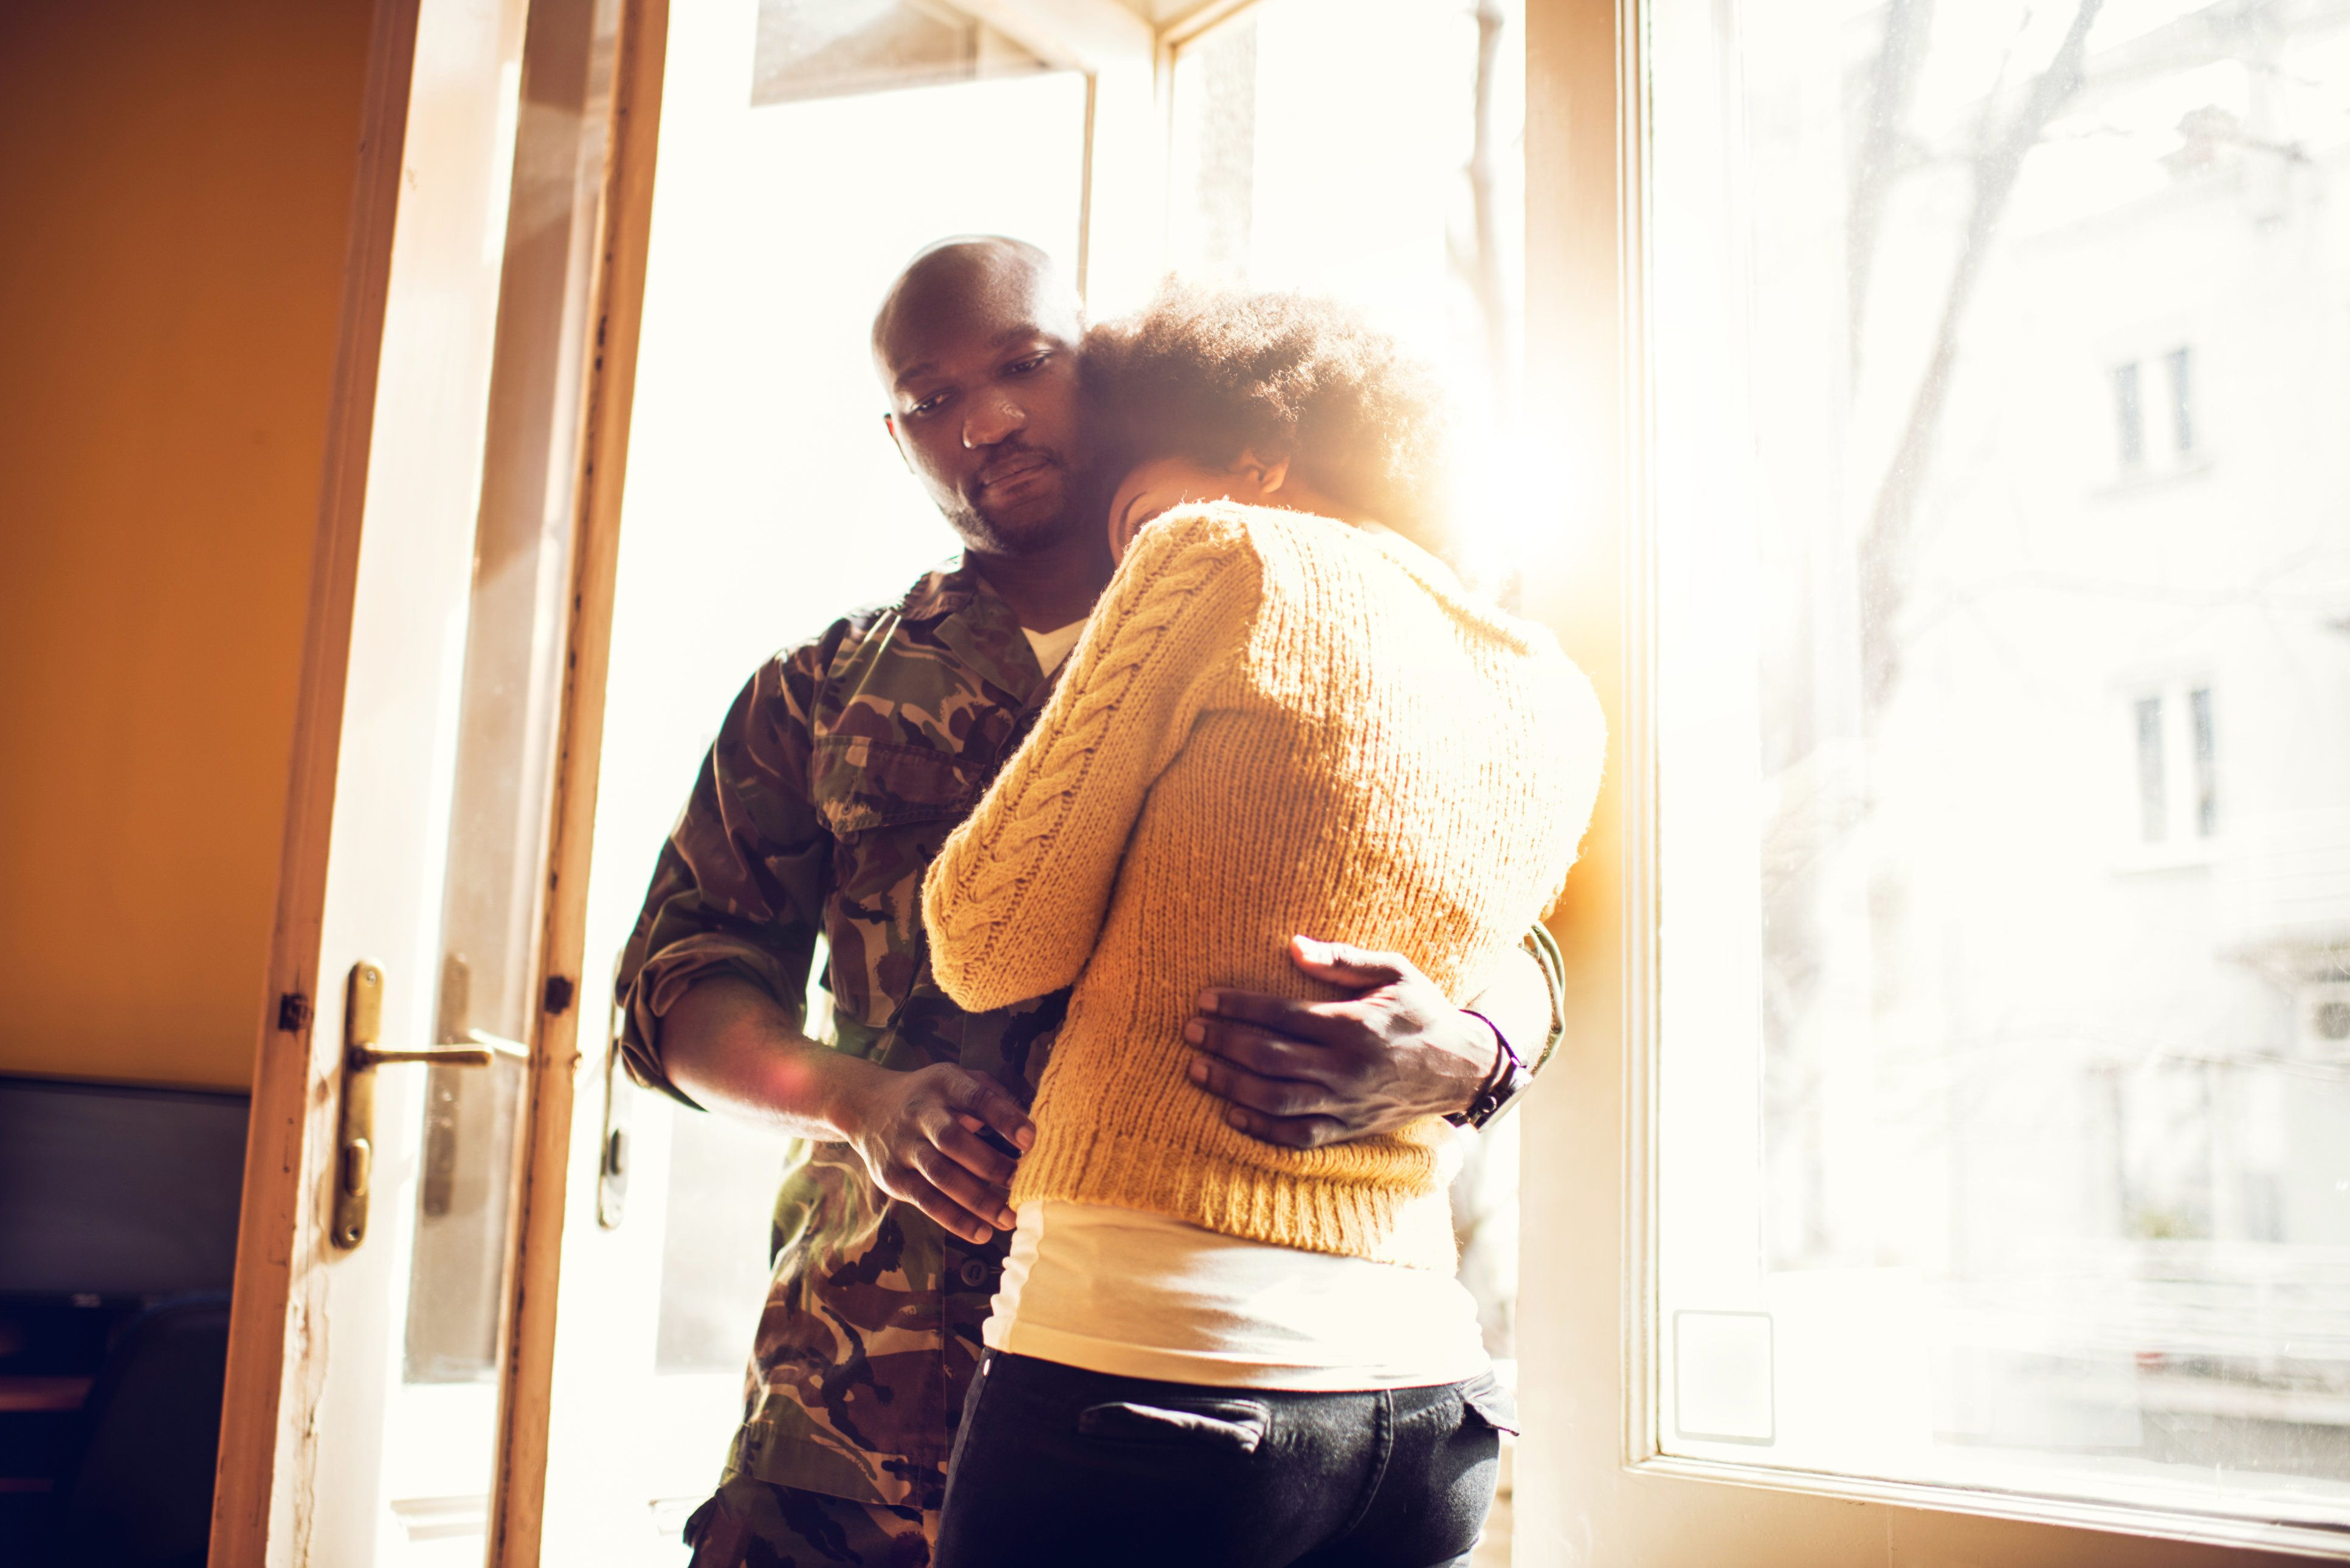 African American couple embracing while military man is about to leave to war.